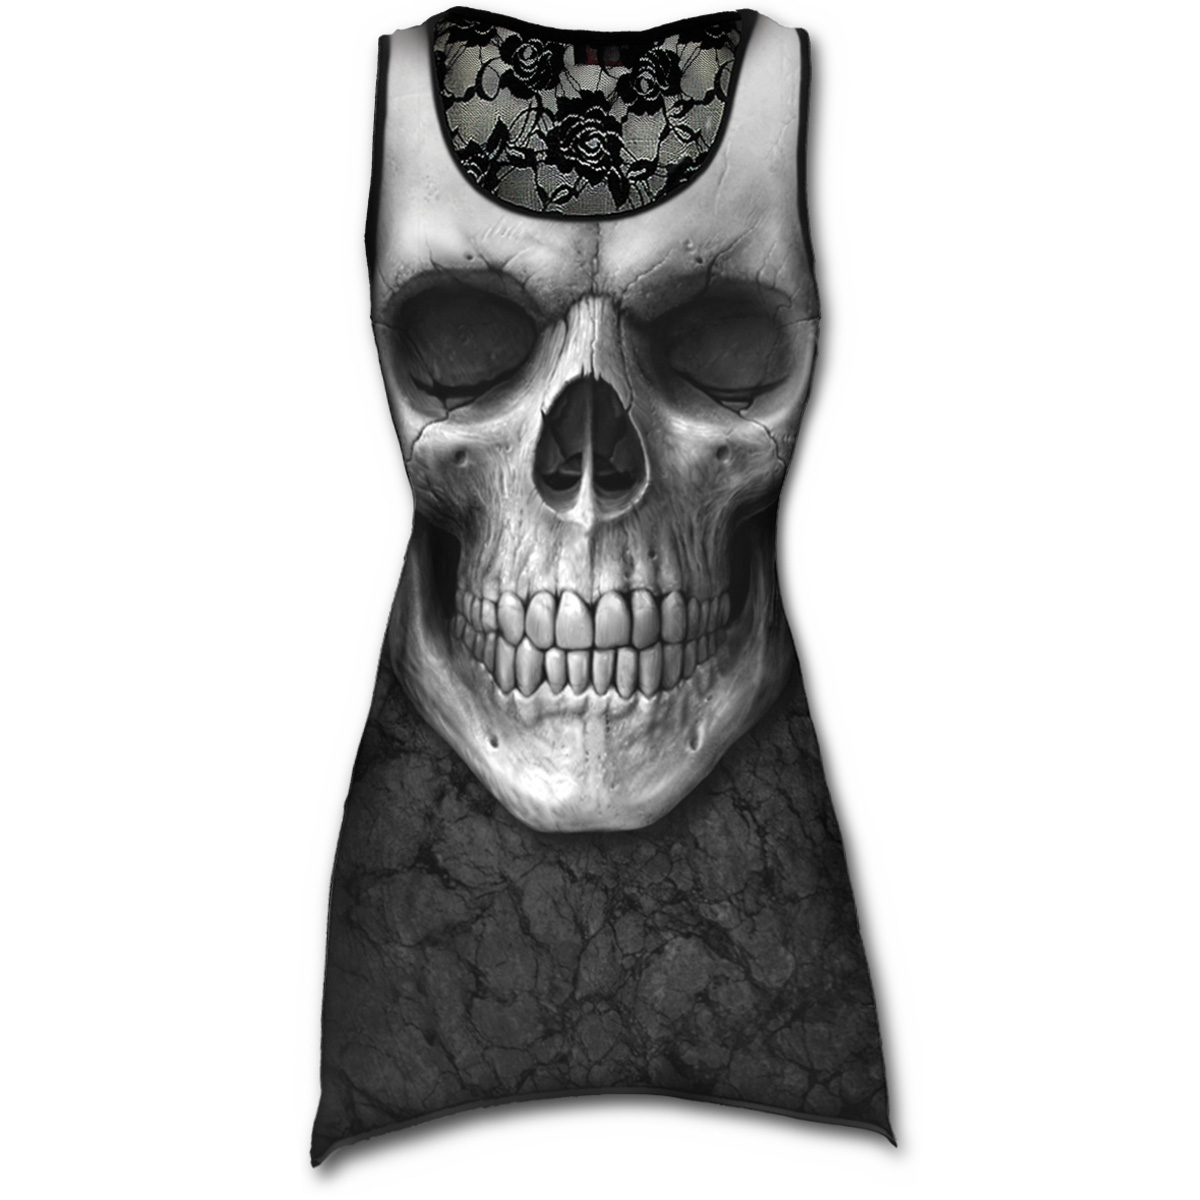 SPIRAL-DIRECT-Ladies-Black-Goth-SOLEMN-SKULL-Lace-Vest-Top-All-Sizes thumbnail 15